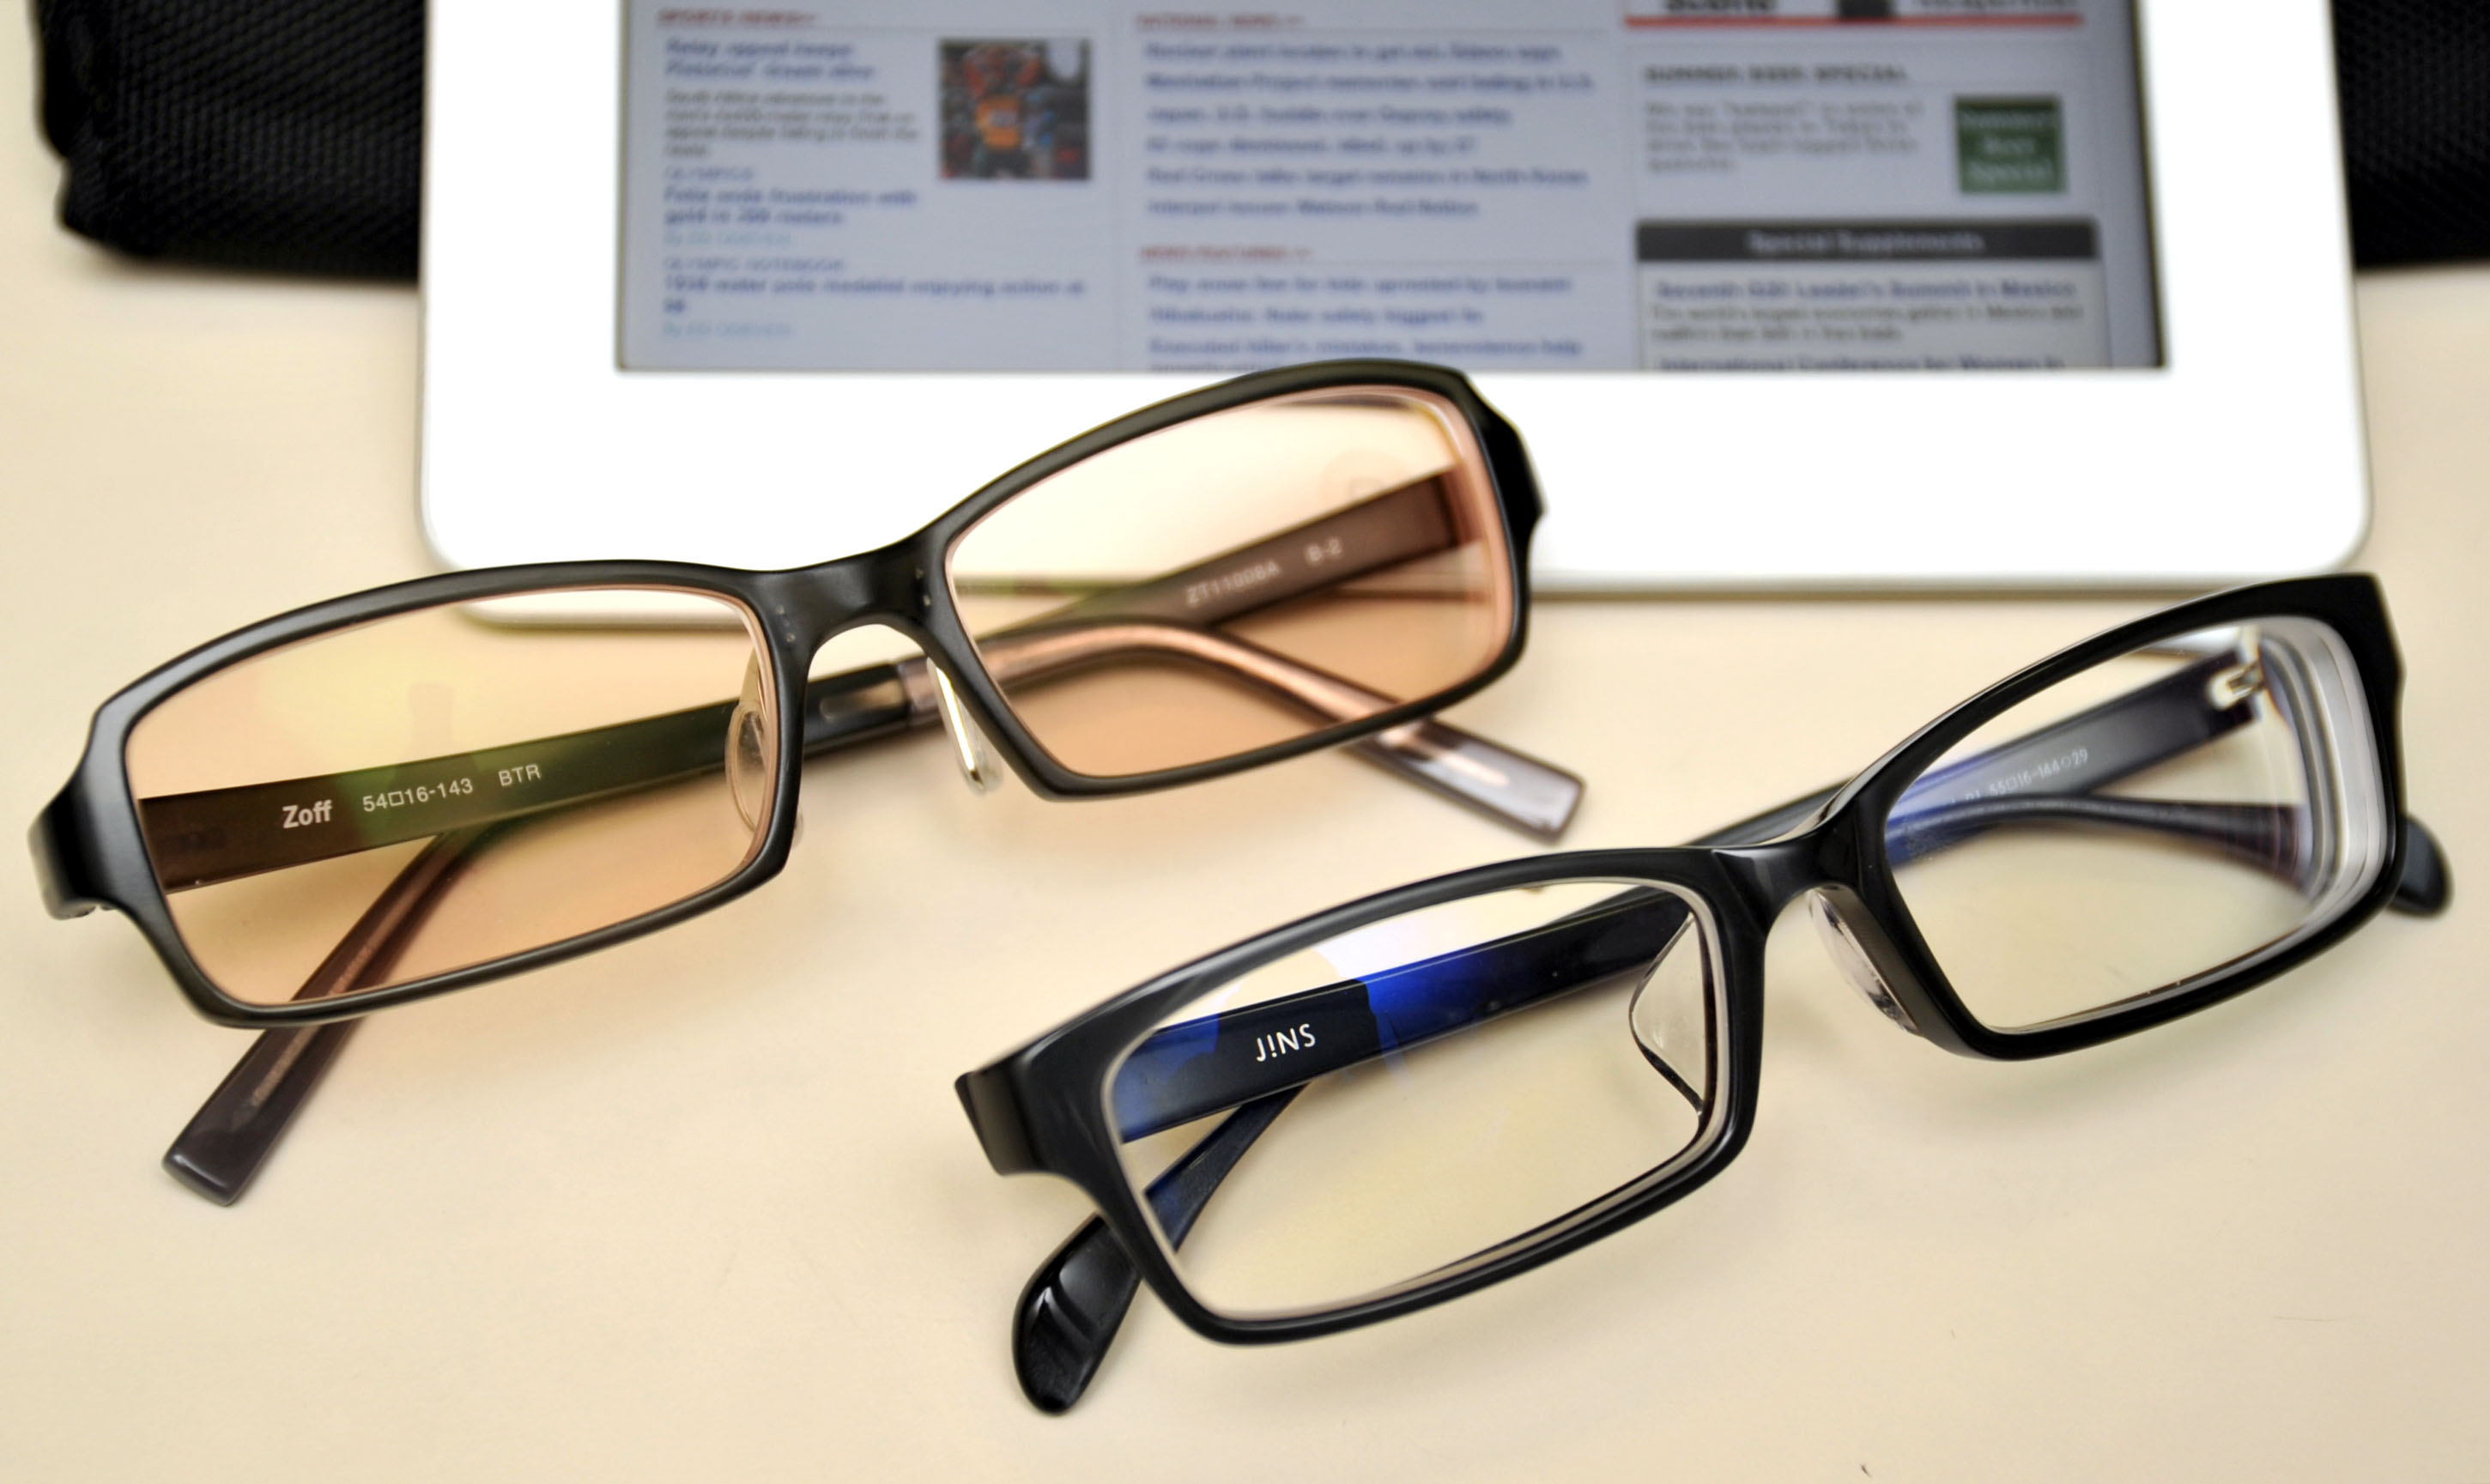 specs fight eye damage from gadget screens the japan times